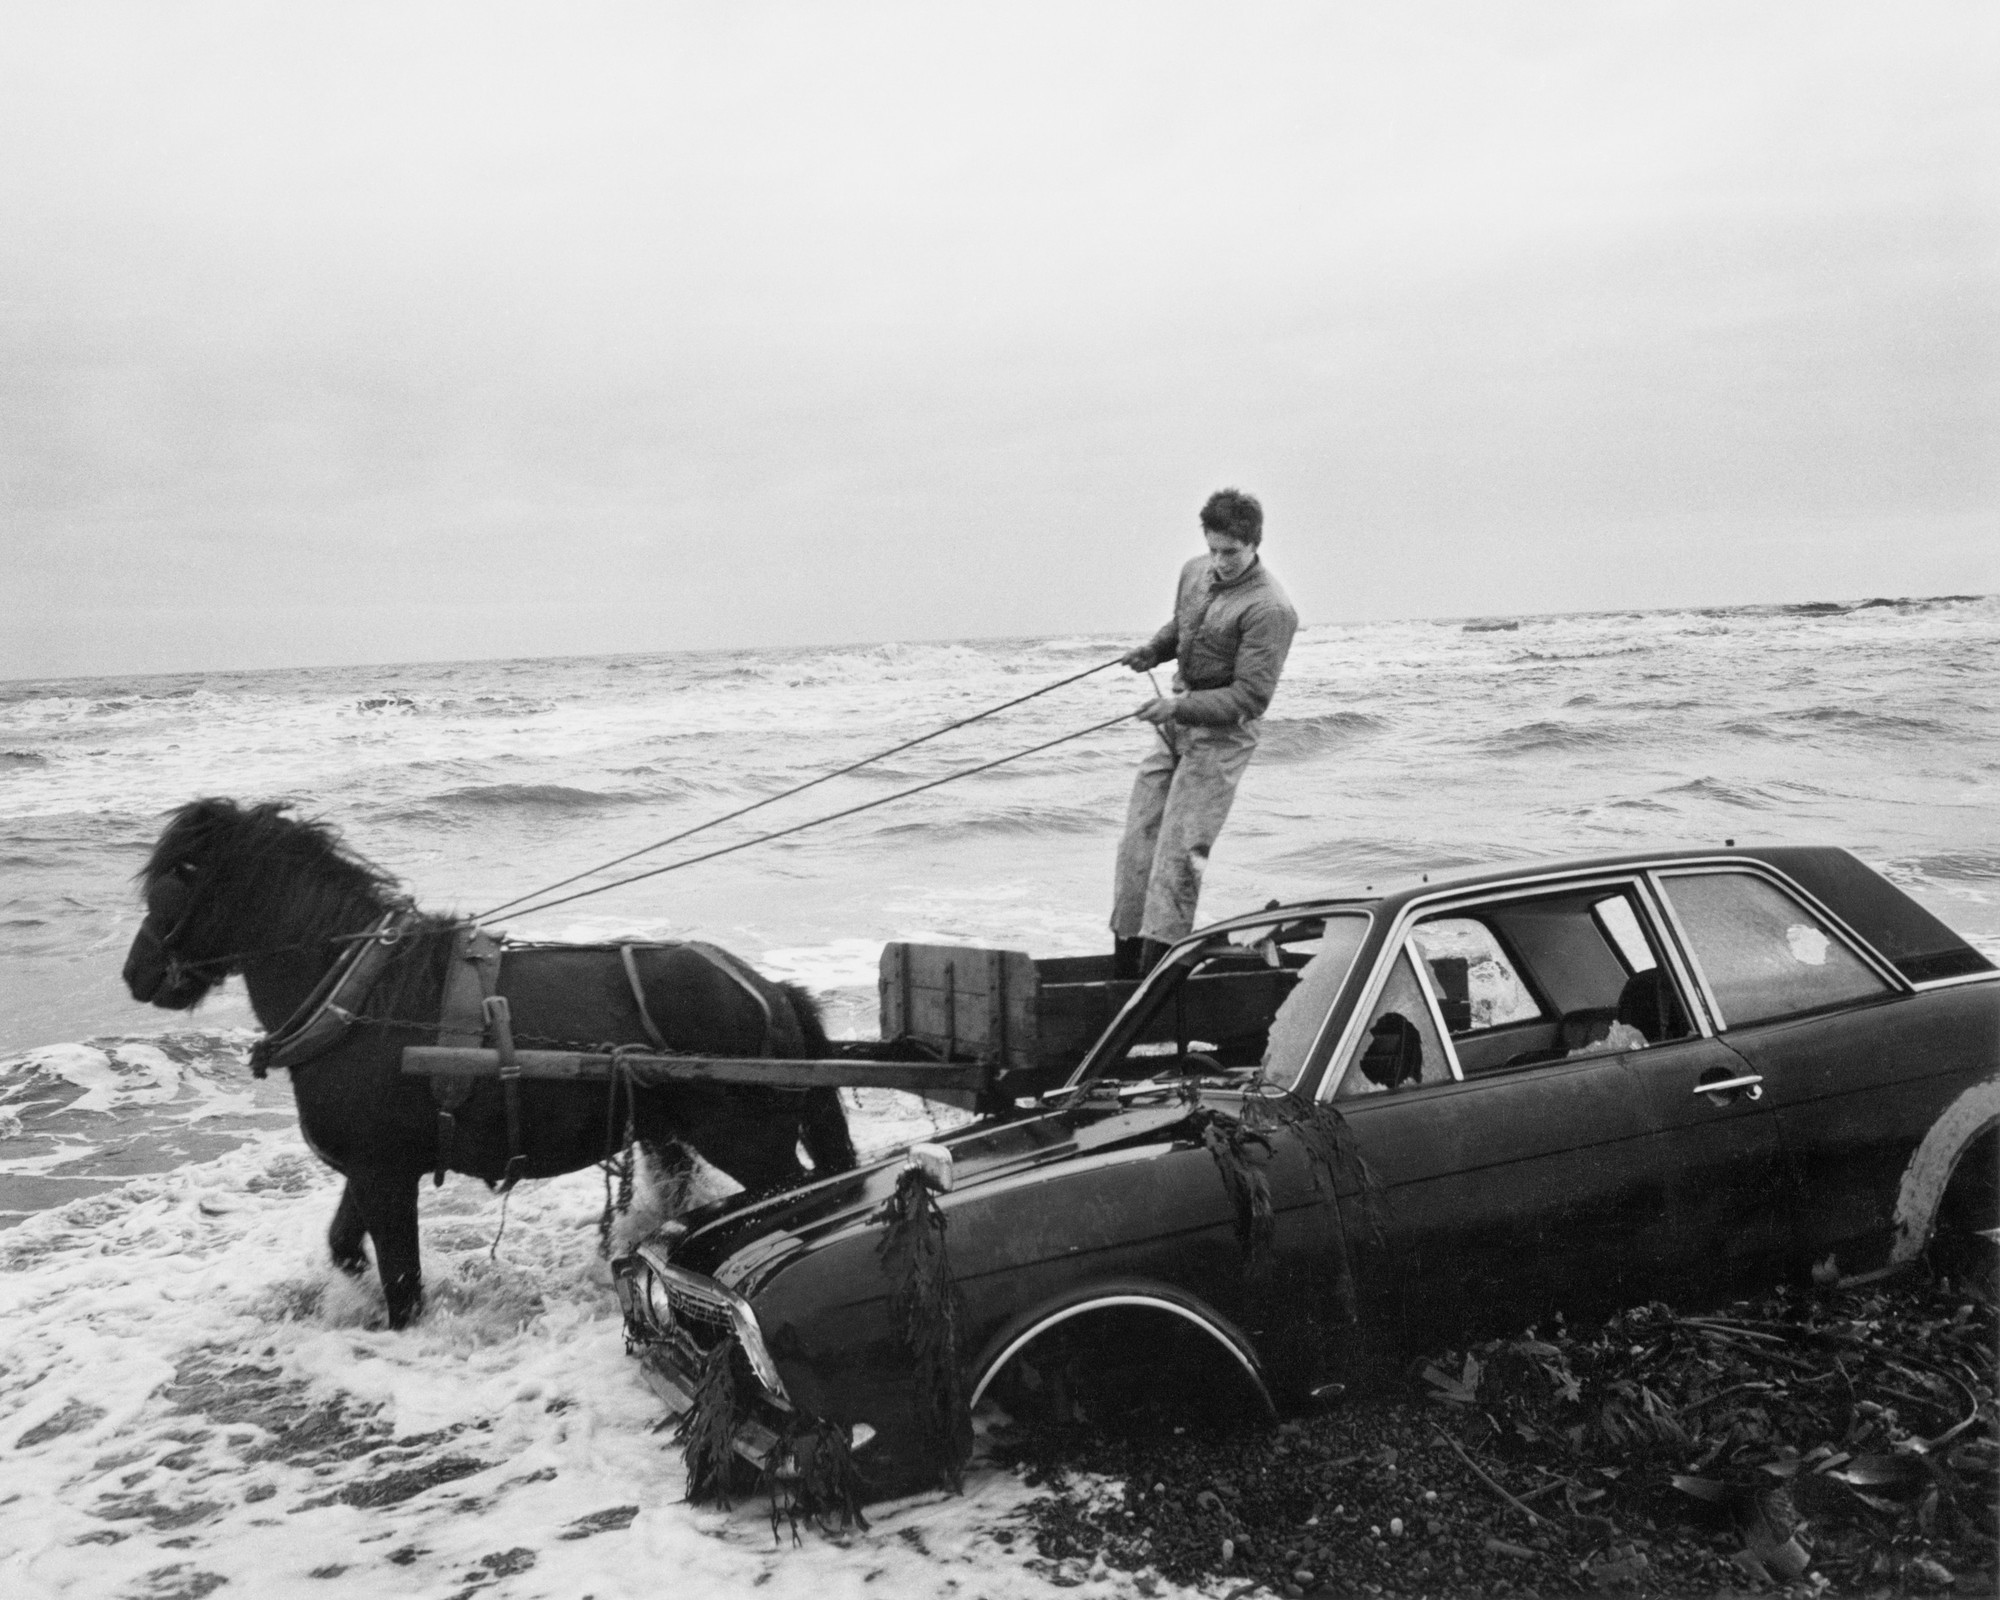 """A car dumped on the beach..."" by Chris Killip, from 1982, at the Getty Museum."